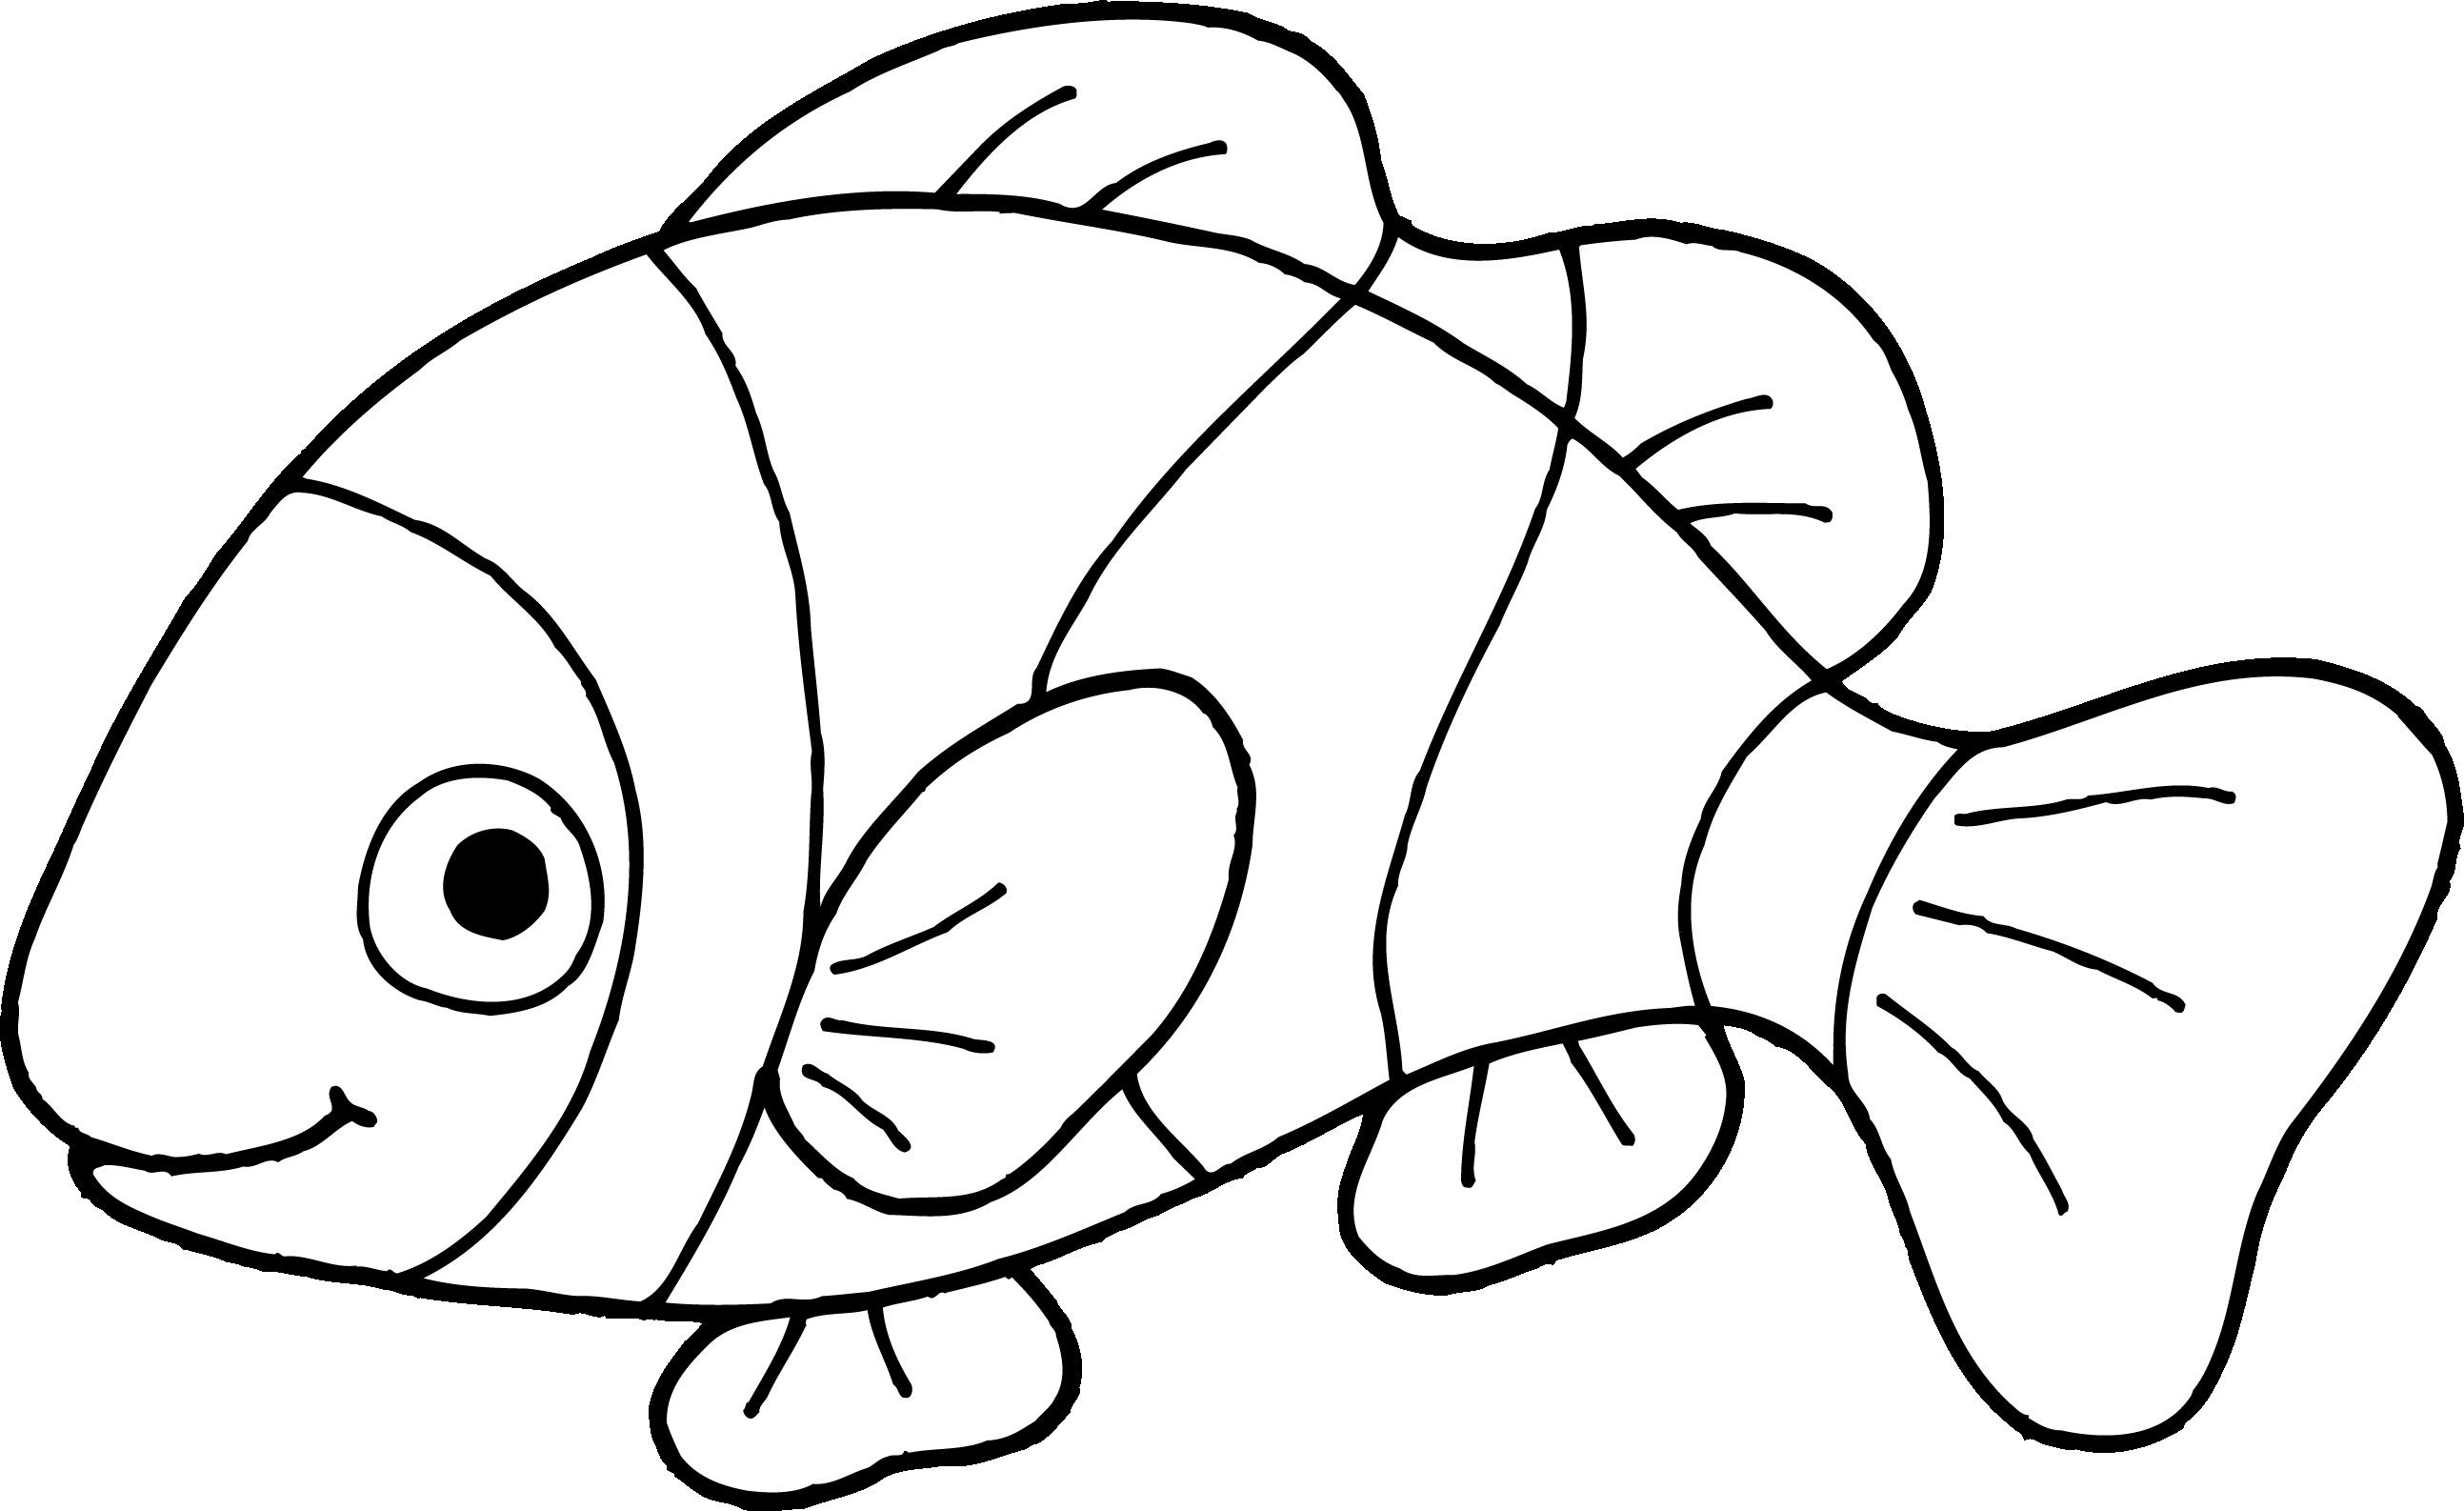 Fish clipart for coloring vector library stock Clownfish Clip Art Fish Clipart Outline 5 | fish | Fish clipart ... vector library stock